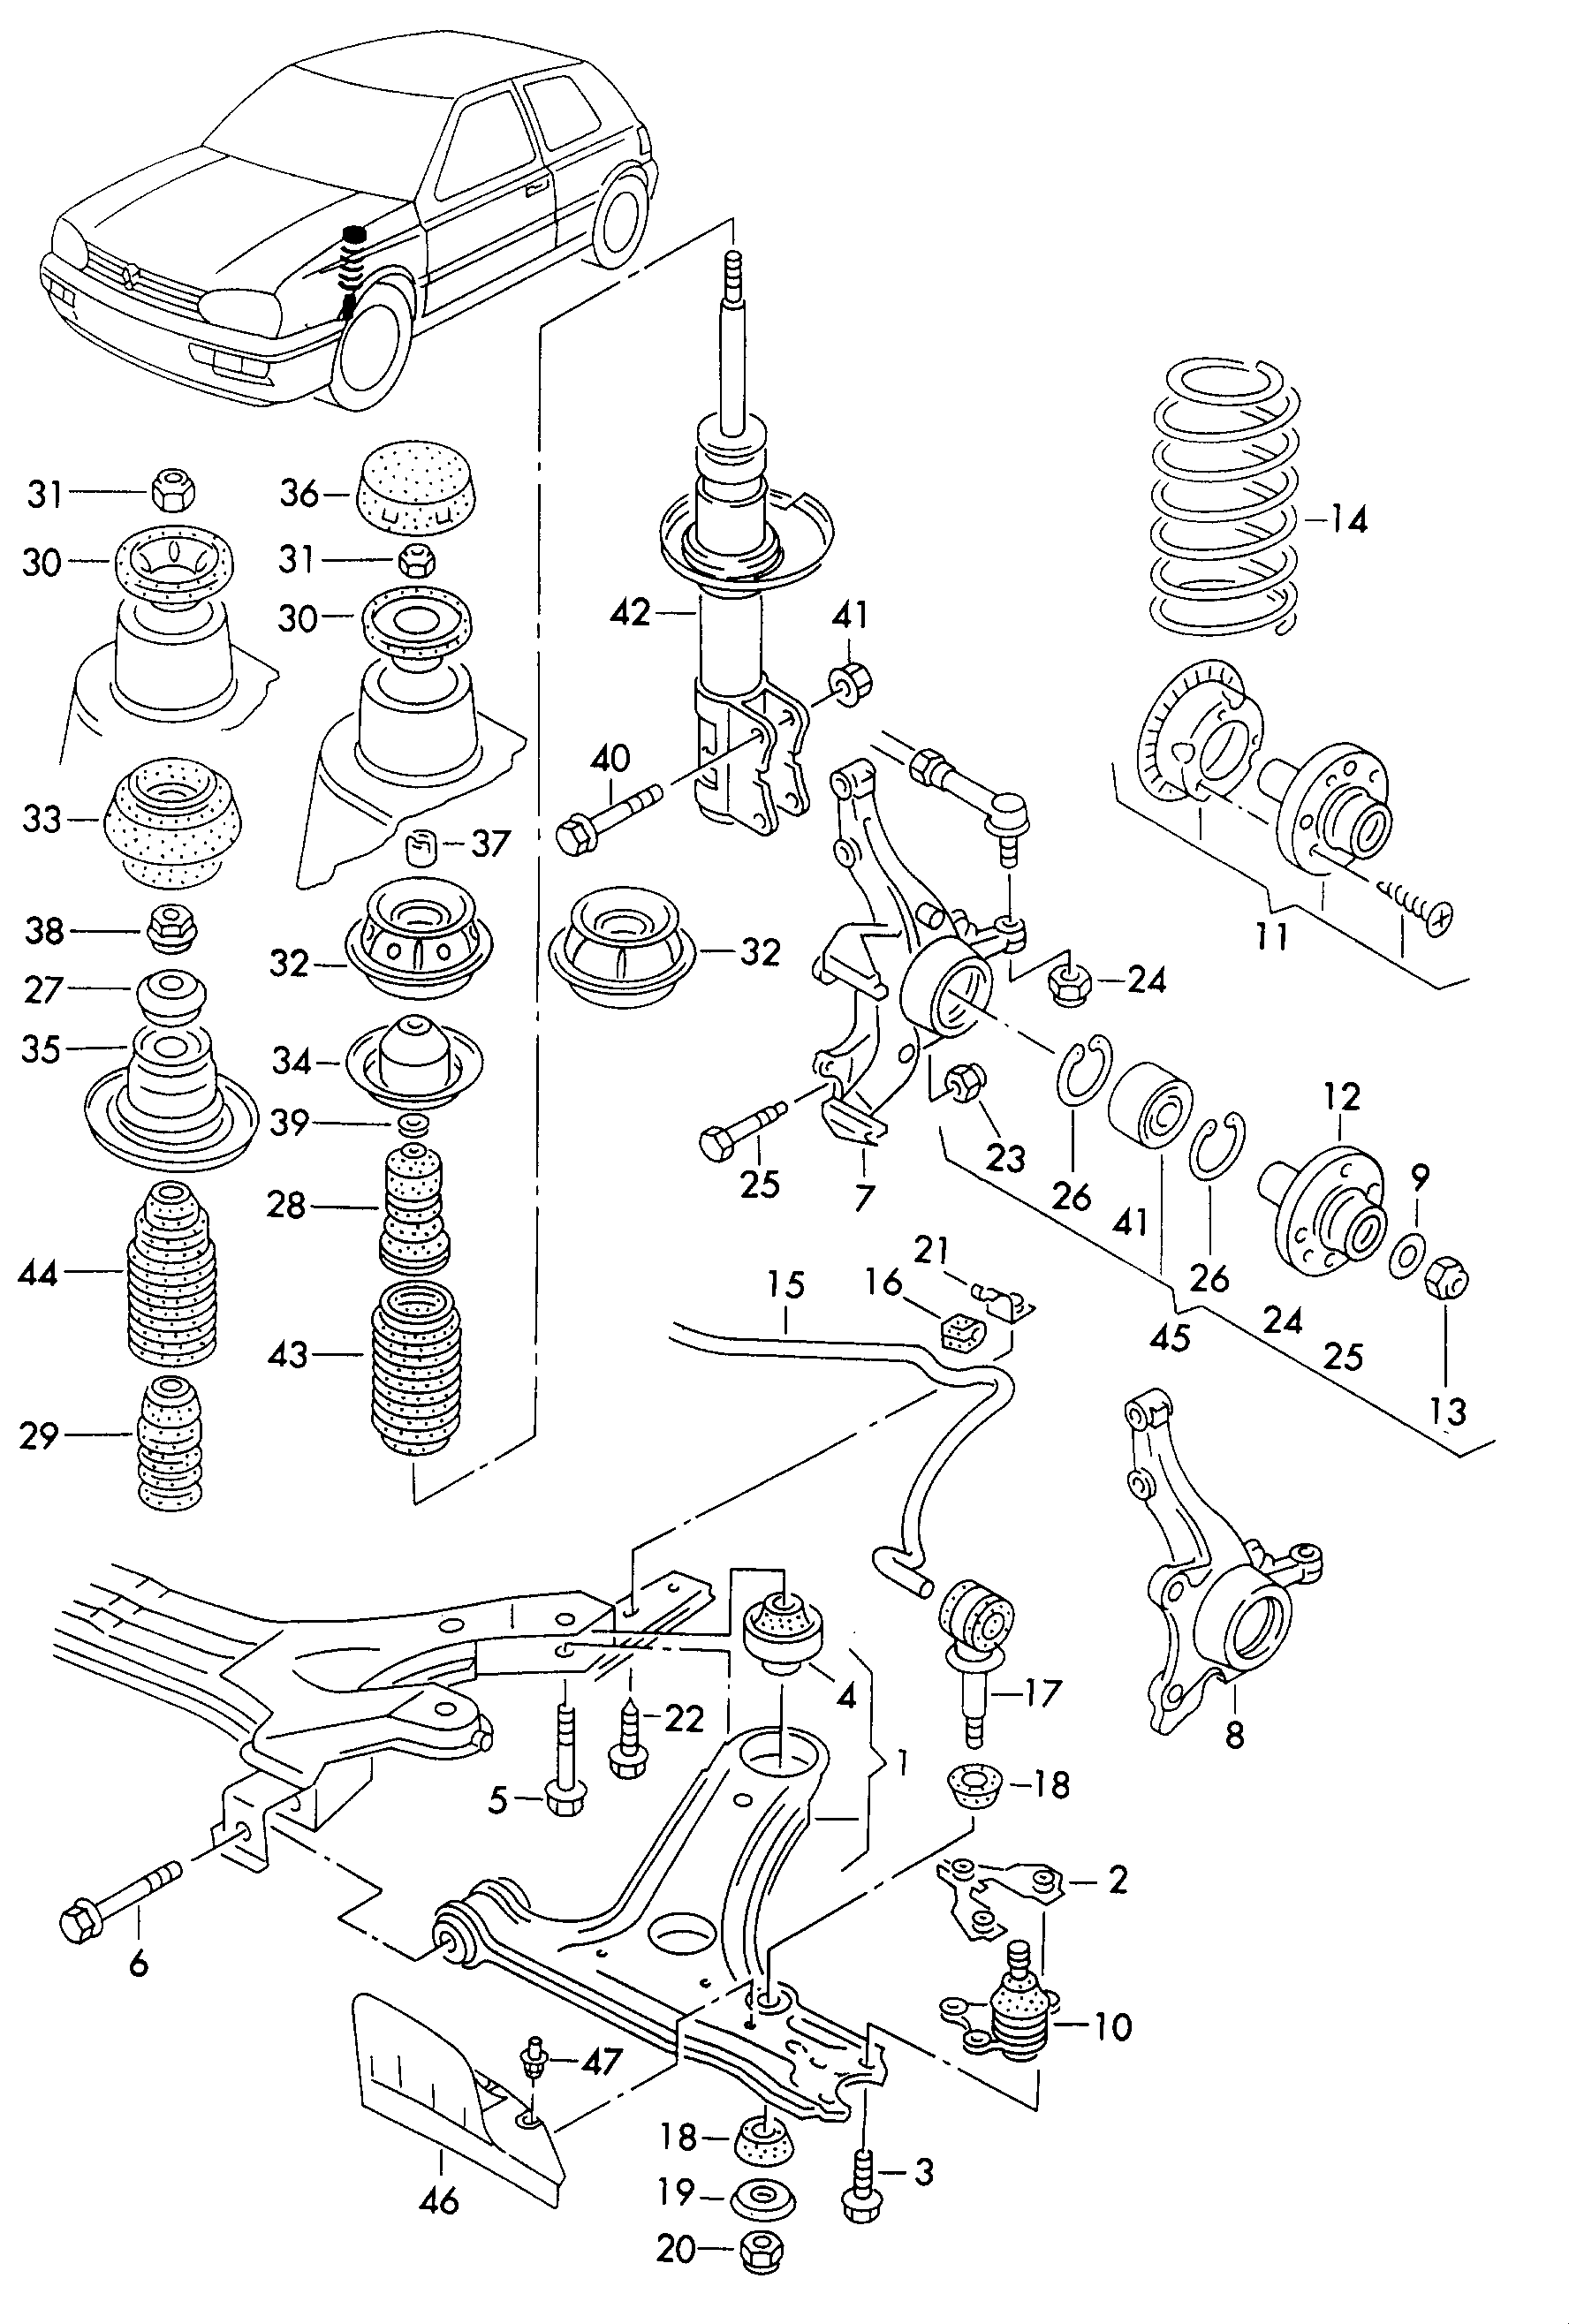 Vw Mk4 Suspension Diagram Free Engine Image For, Vw, Free